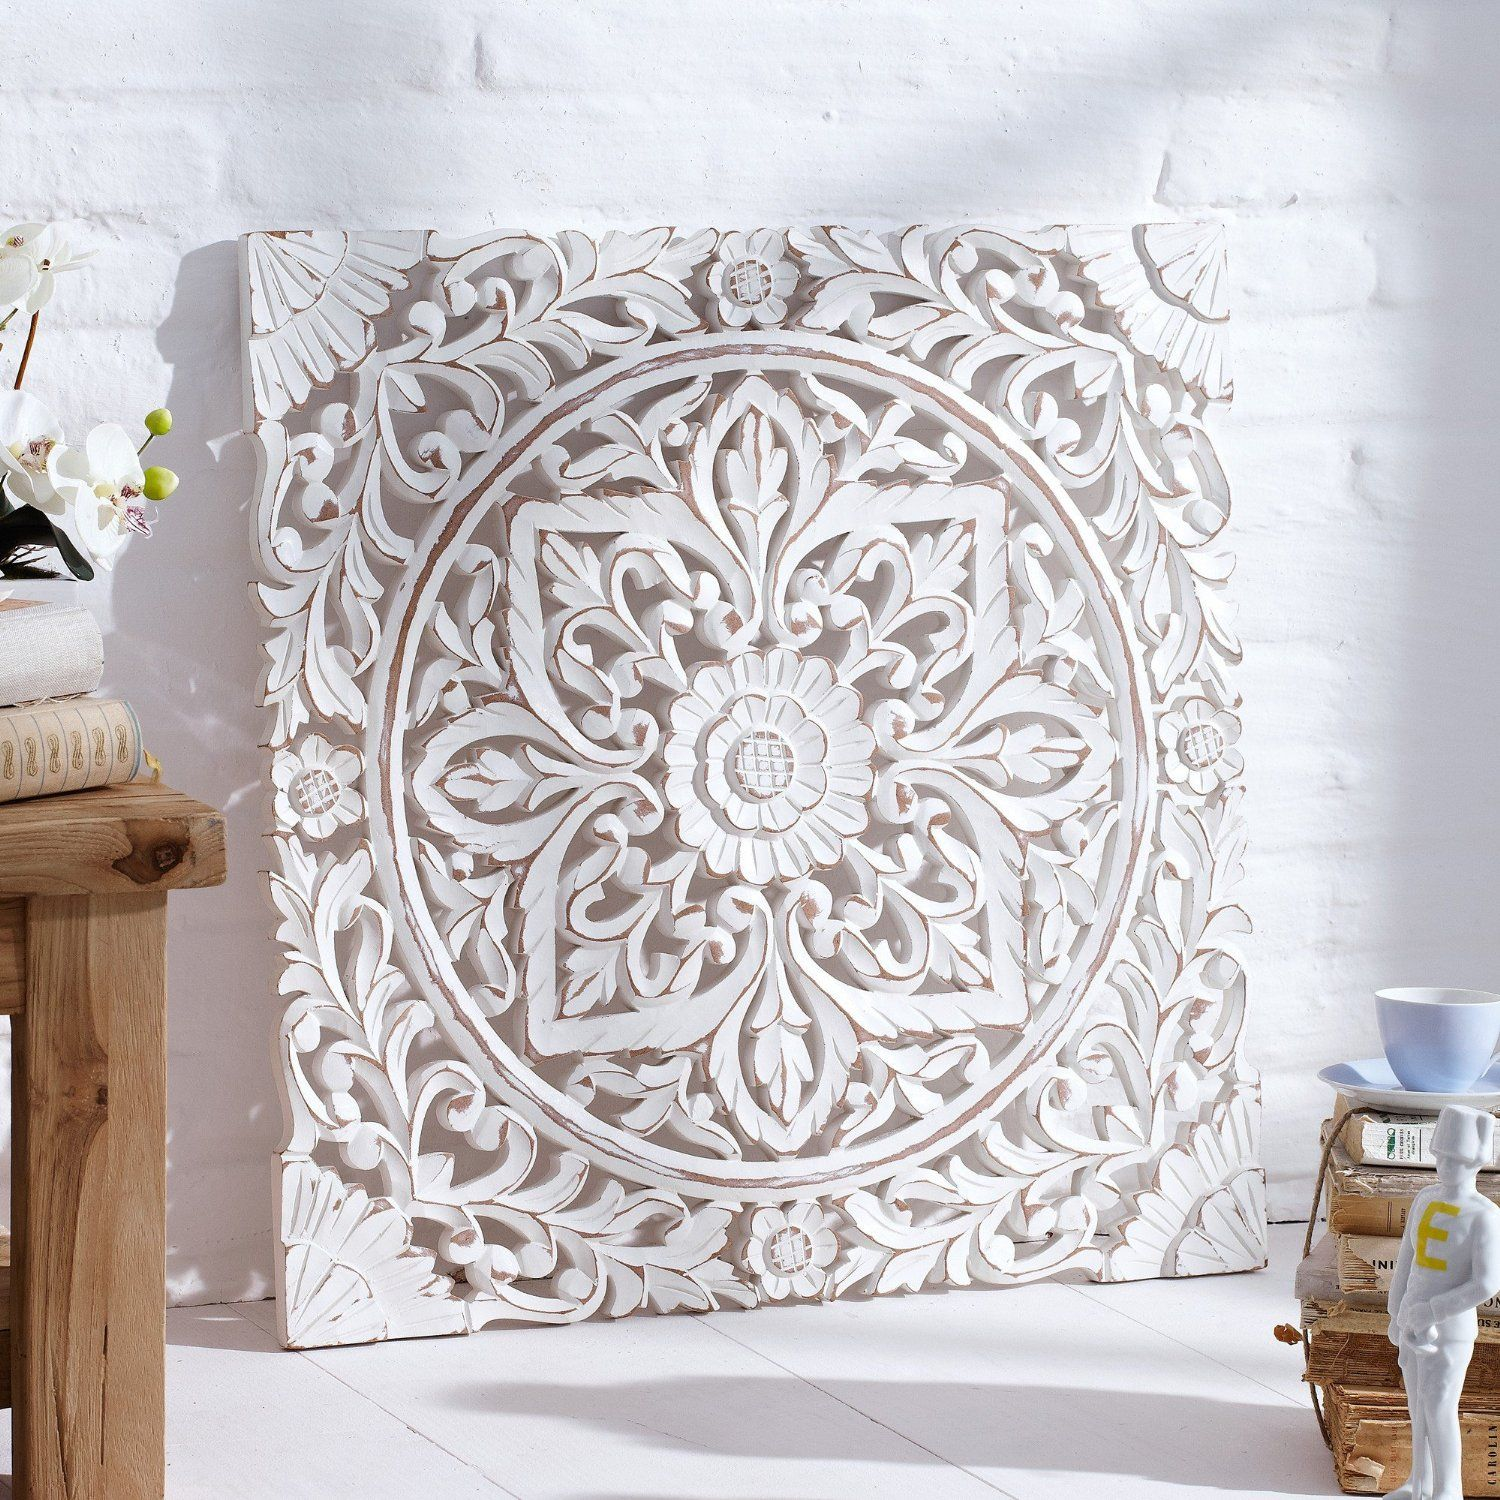 Carved Wooden Wall Panel Distressed White Amazon Co Uk Kitchen Home White Wood Wall Decor Carved Wood Wall Art Carved Wall Art